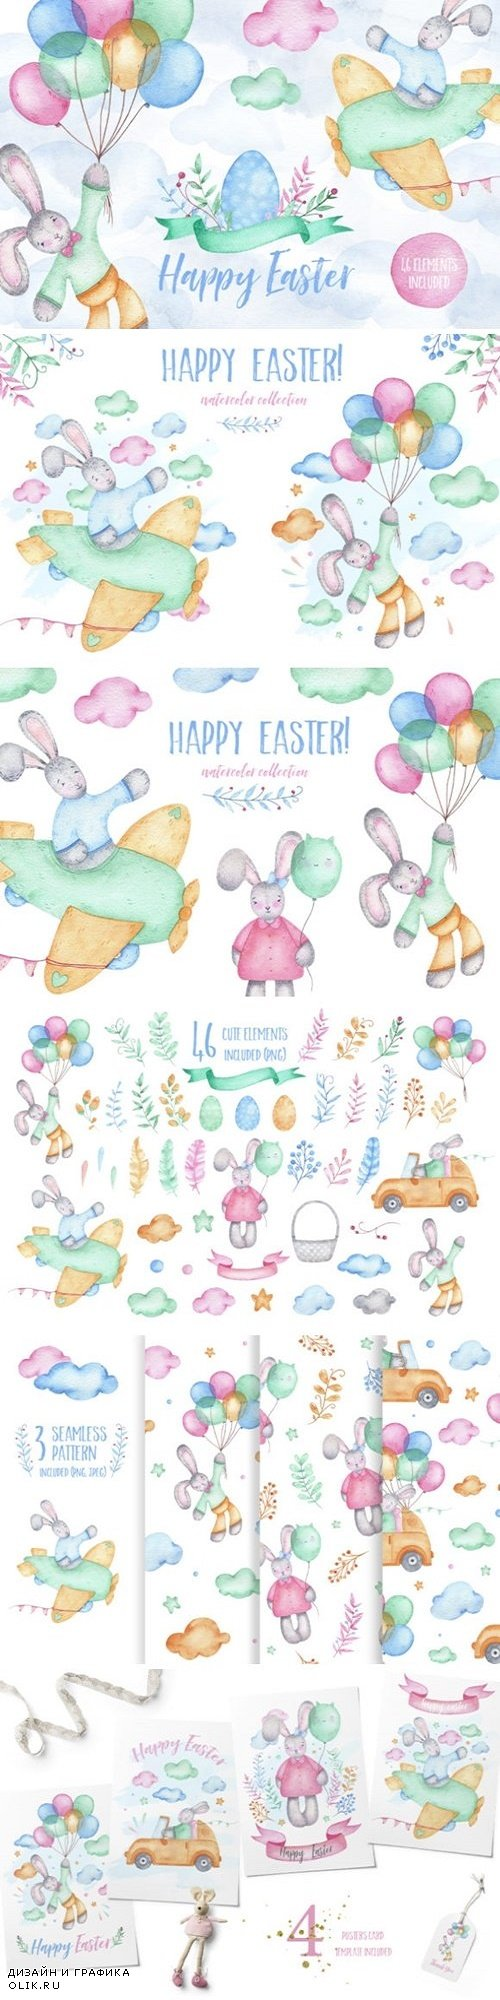 Happy Easter - watercolor clipart - 3385840